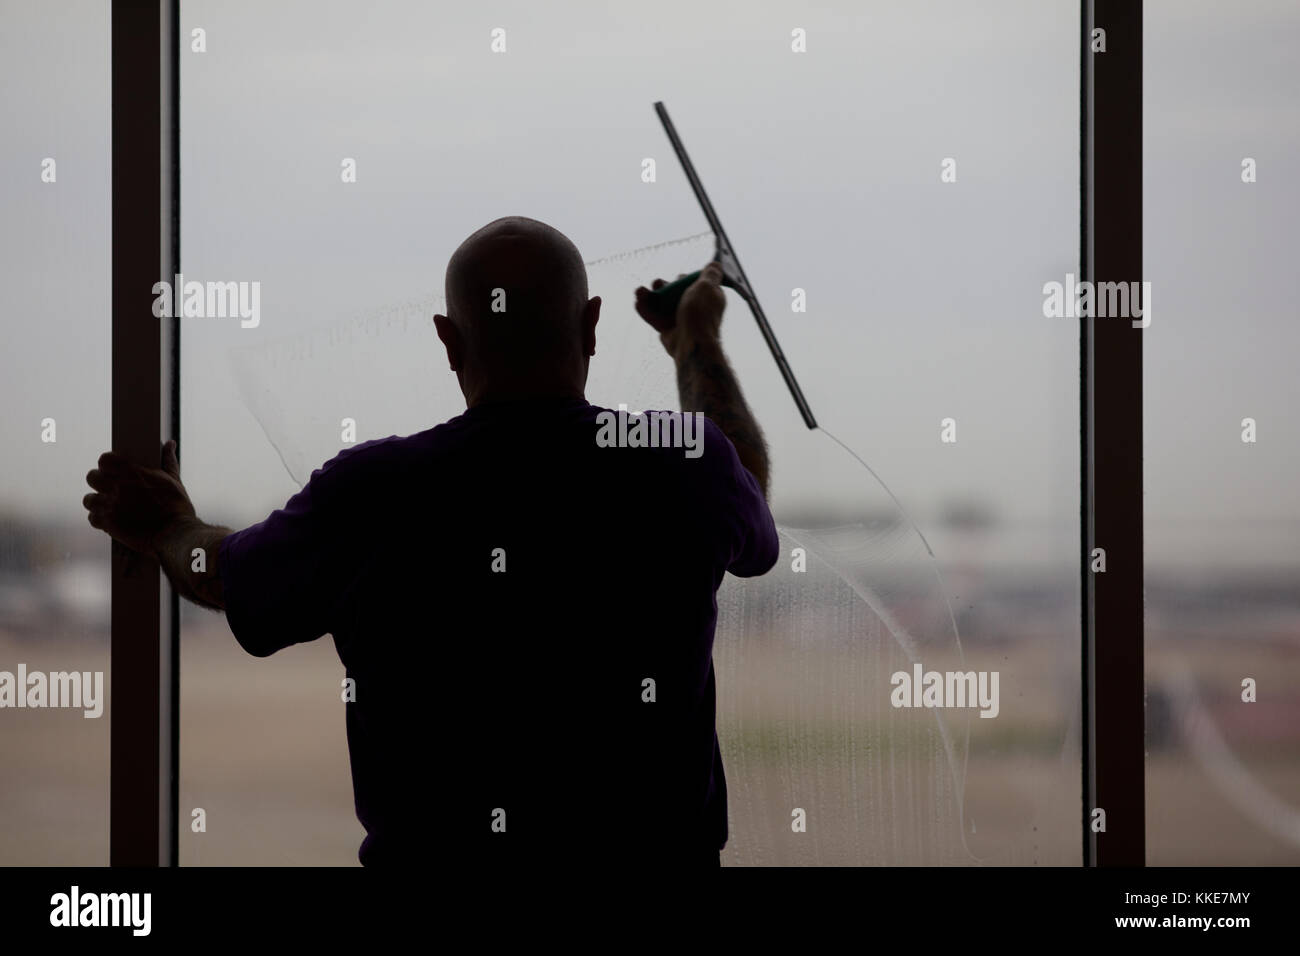 Window cleaner washing the windows at Manchester Airport - Stock Image